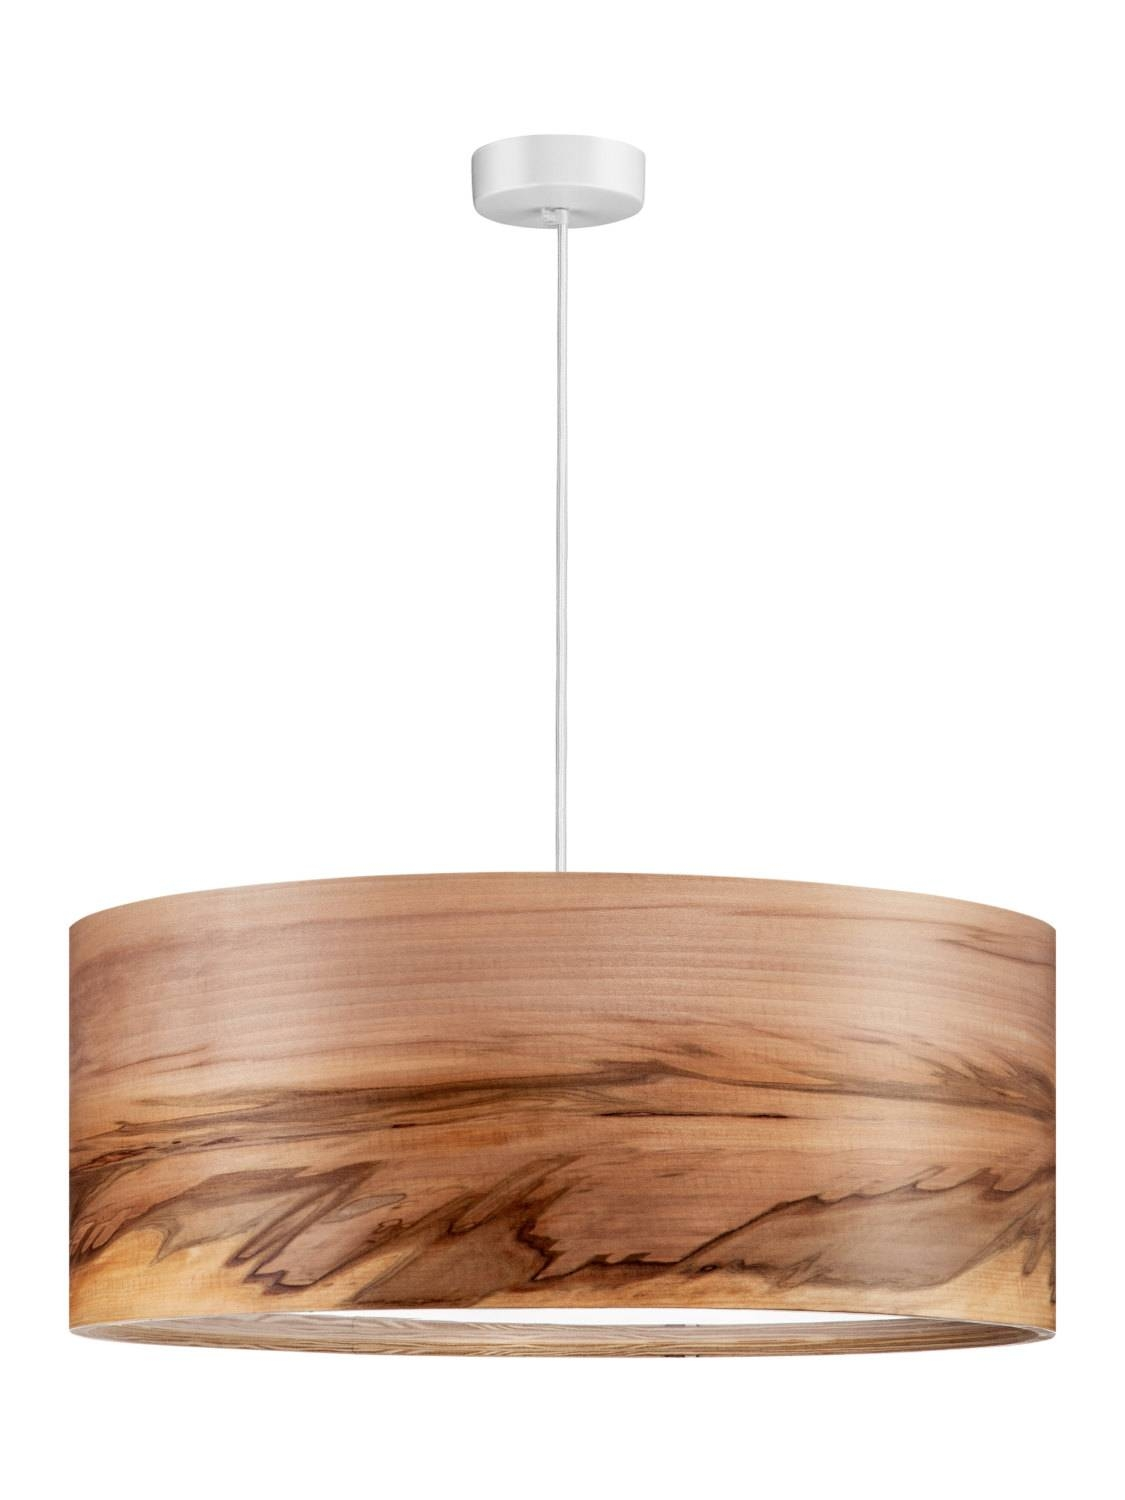 Pendant Lamp - Chandelier - Ceiling Lamp - Pendant Lights - Veneer regarding Wood Veneer Pendant Lights (Image 10 of 15)